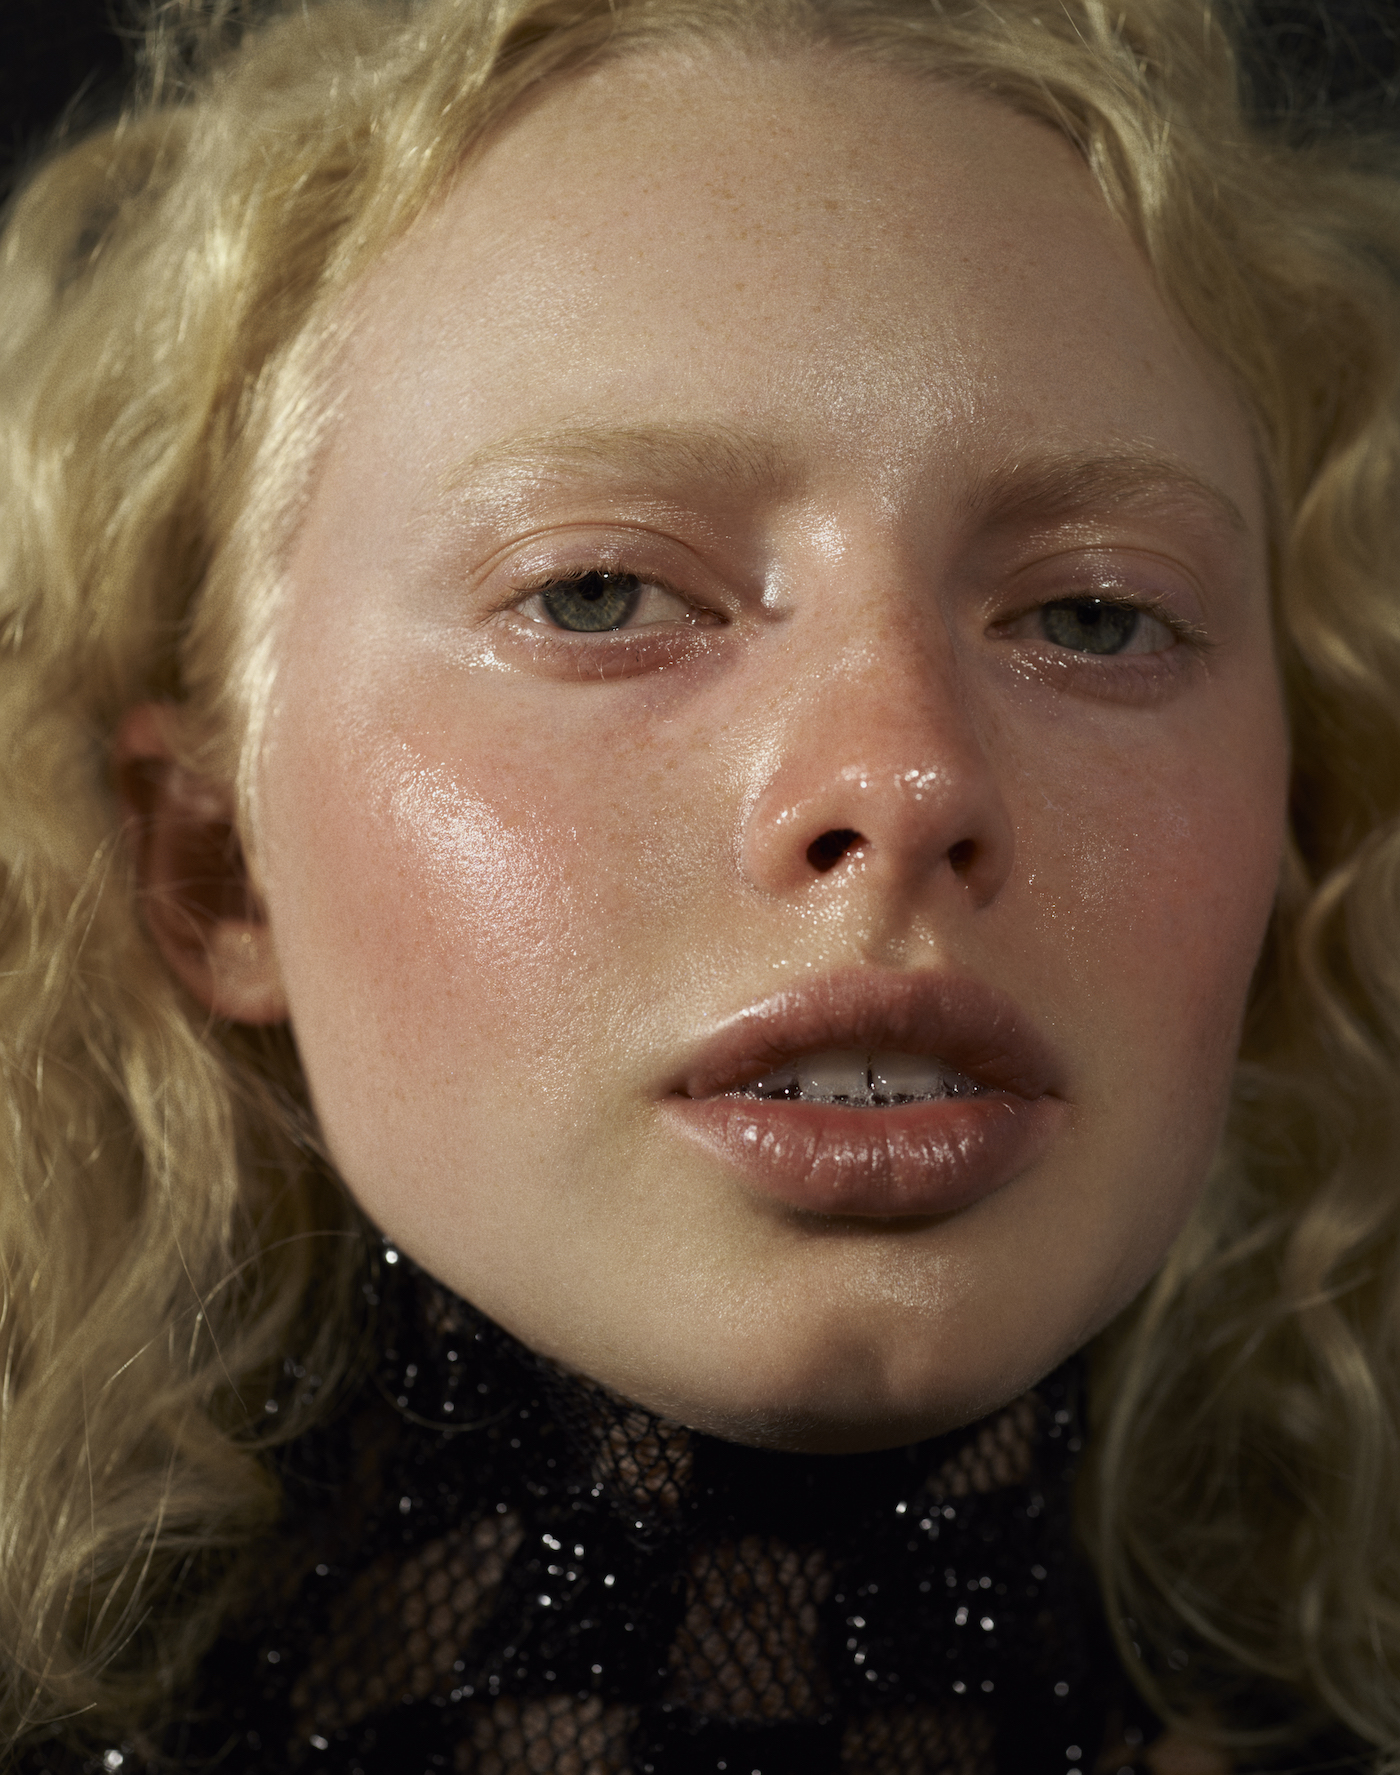 Cinematic Photographs About Women Crying In Classic Film - I-D-9659